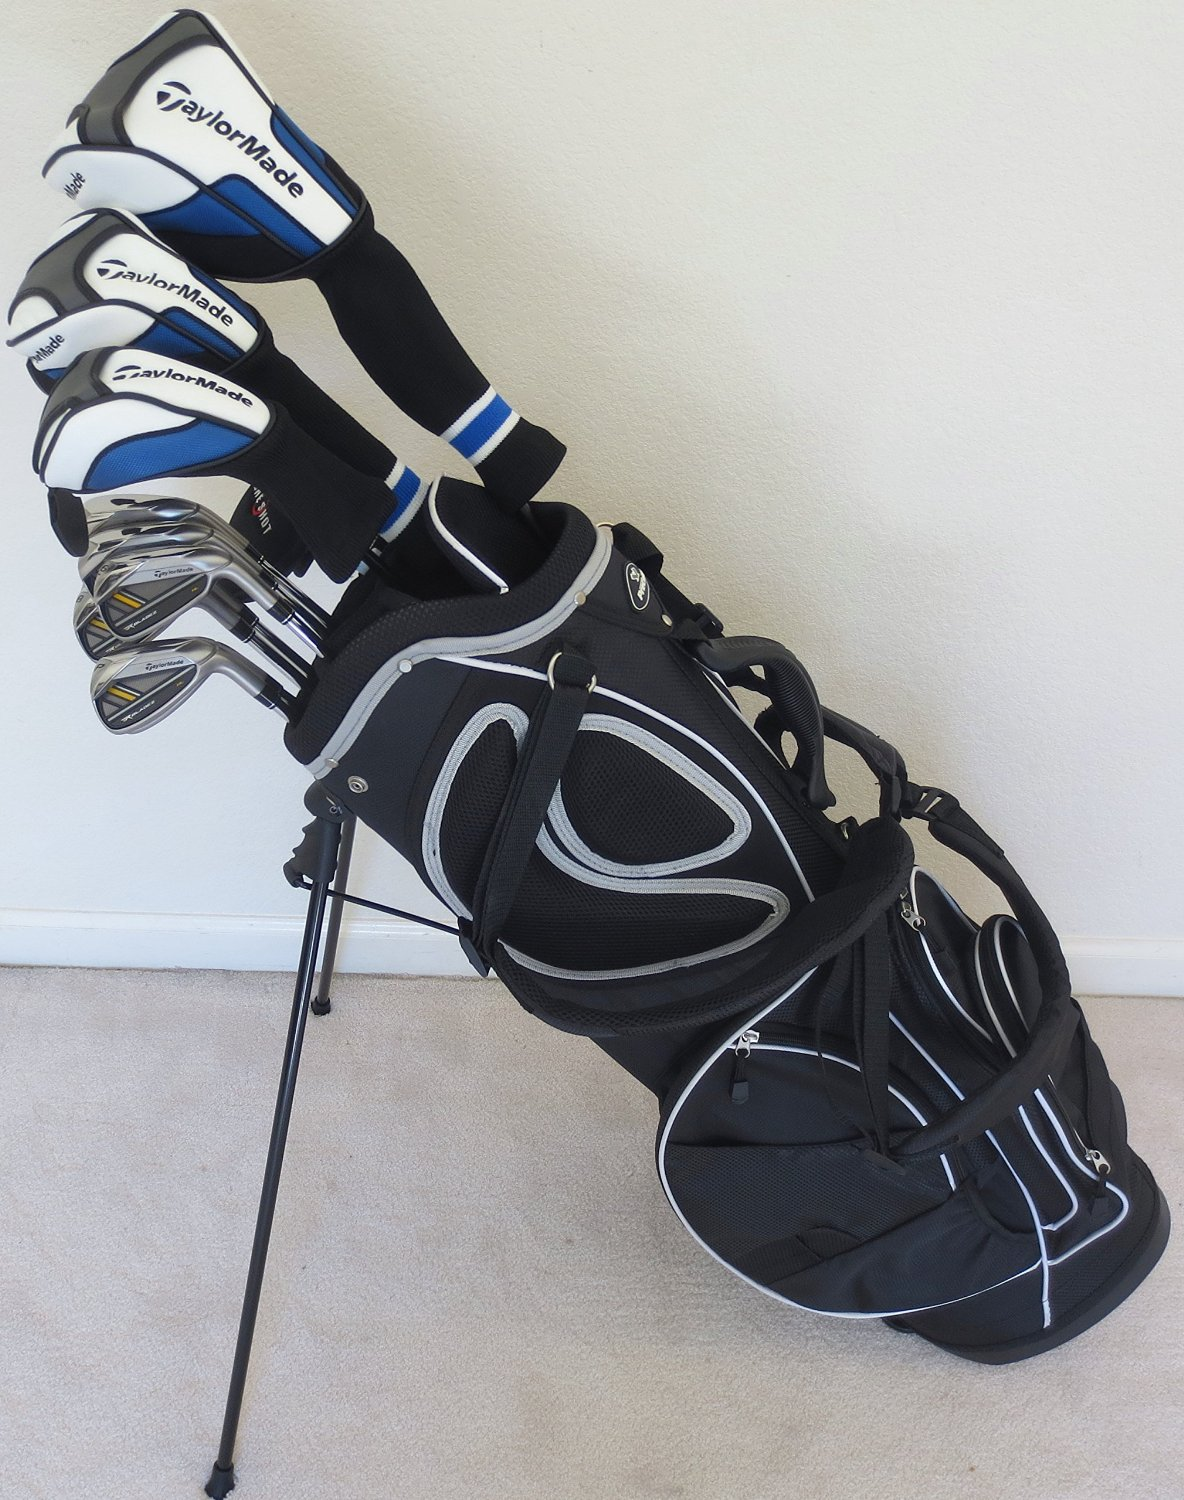 Taylormade Complete Golf Club Sets